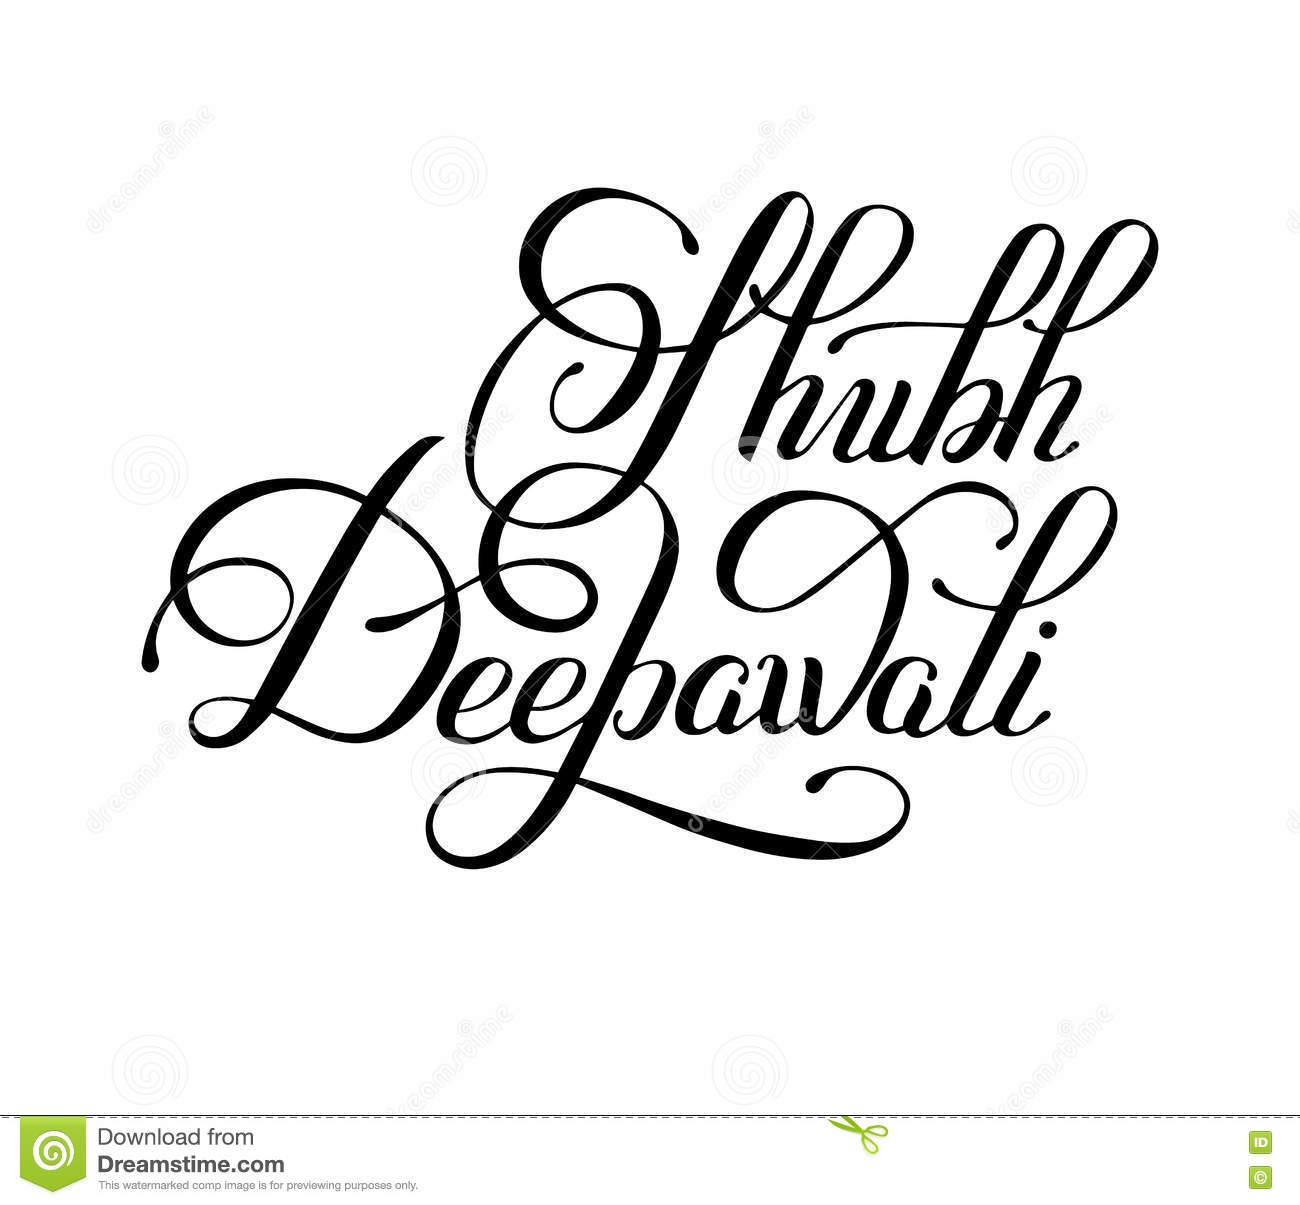 Black And White Hand Lettering Inscription Shubh Deepawali Stock ... for Diwali Festival Black And White Images  54lyp